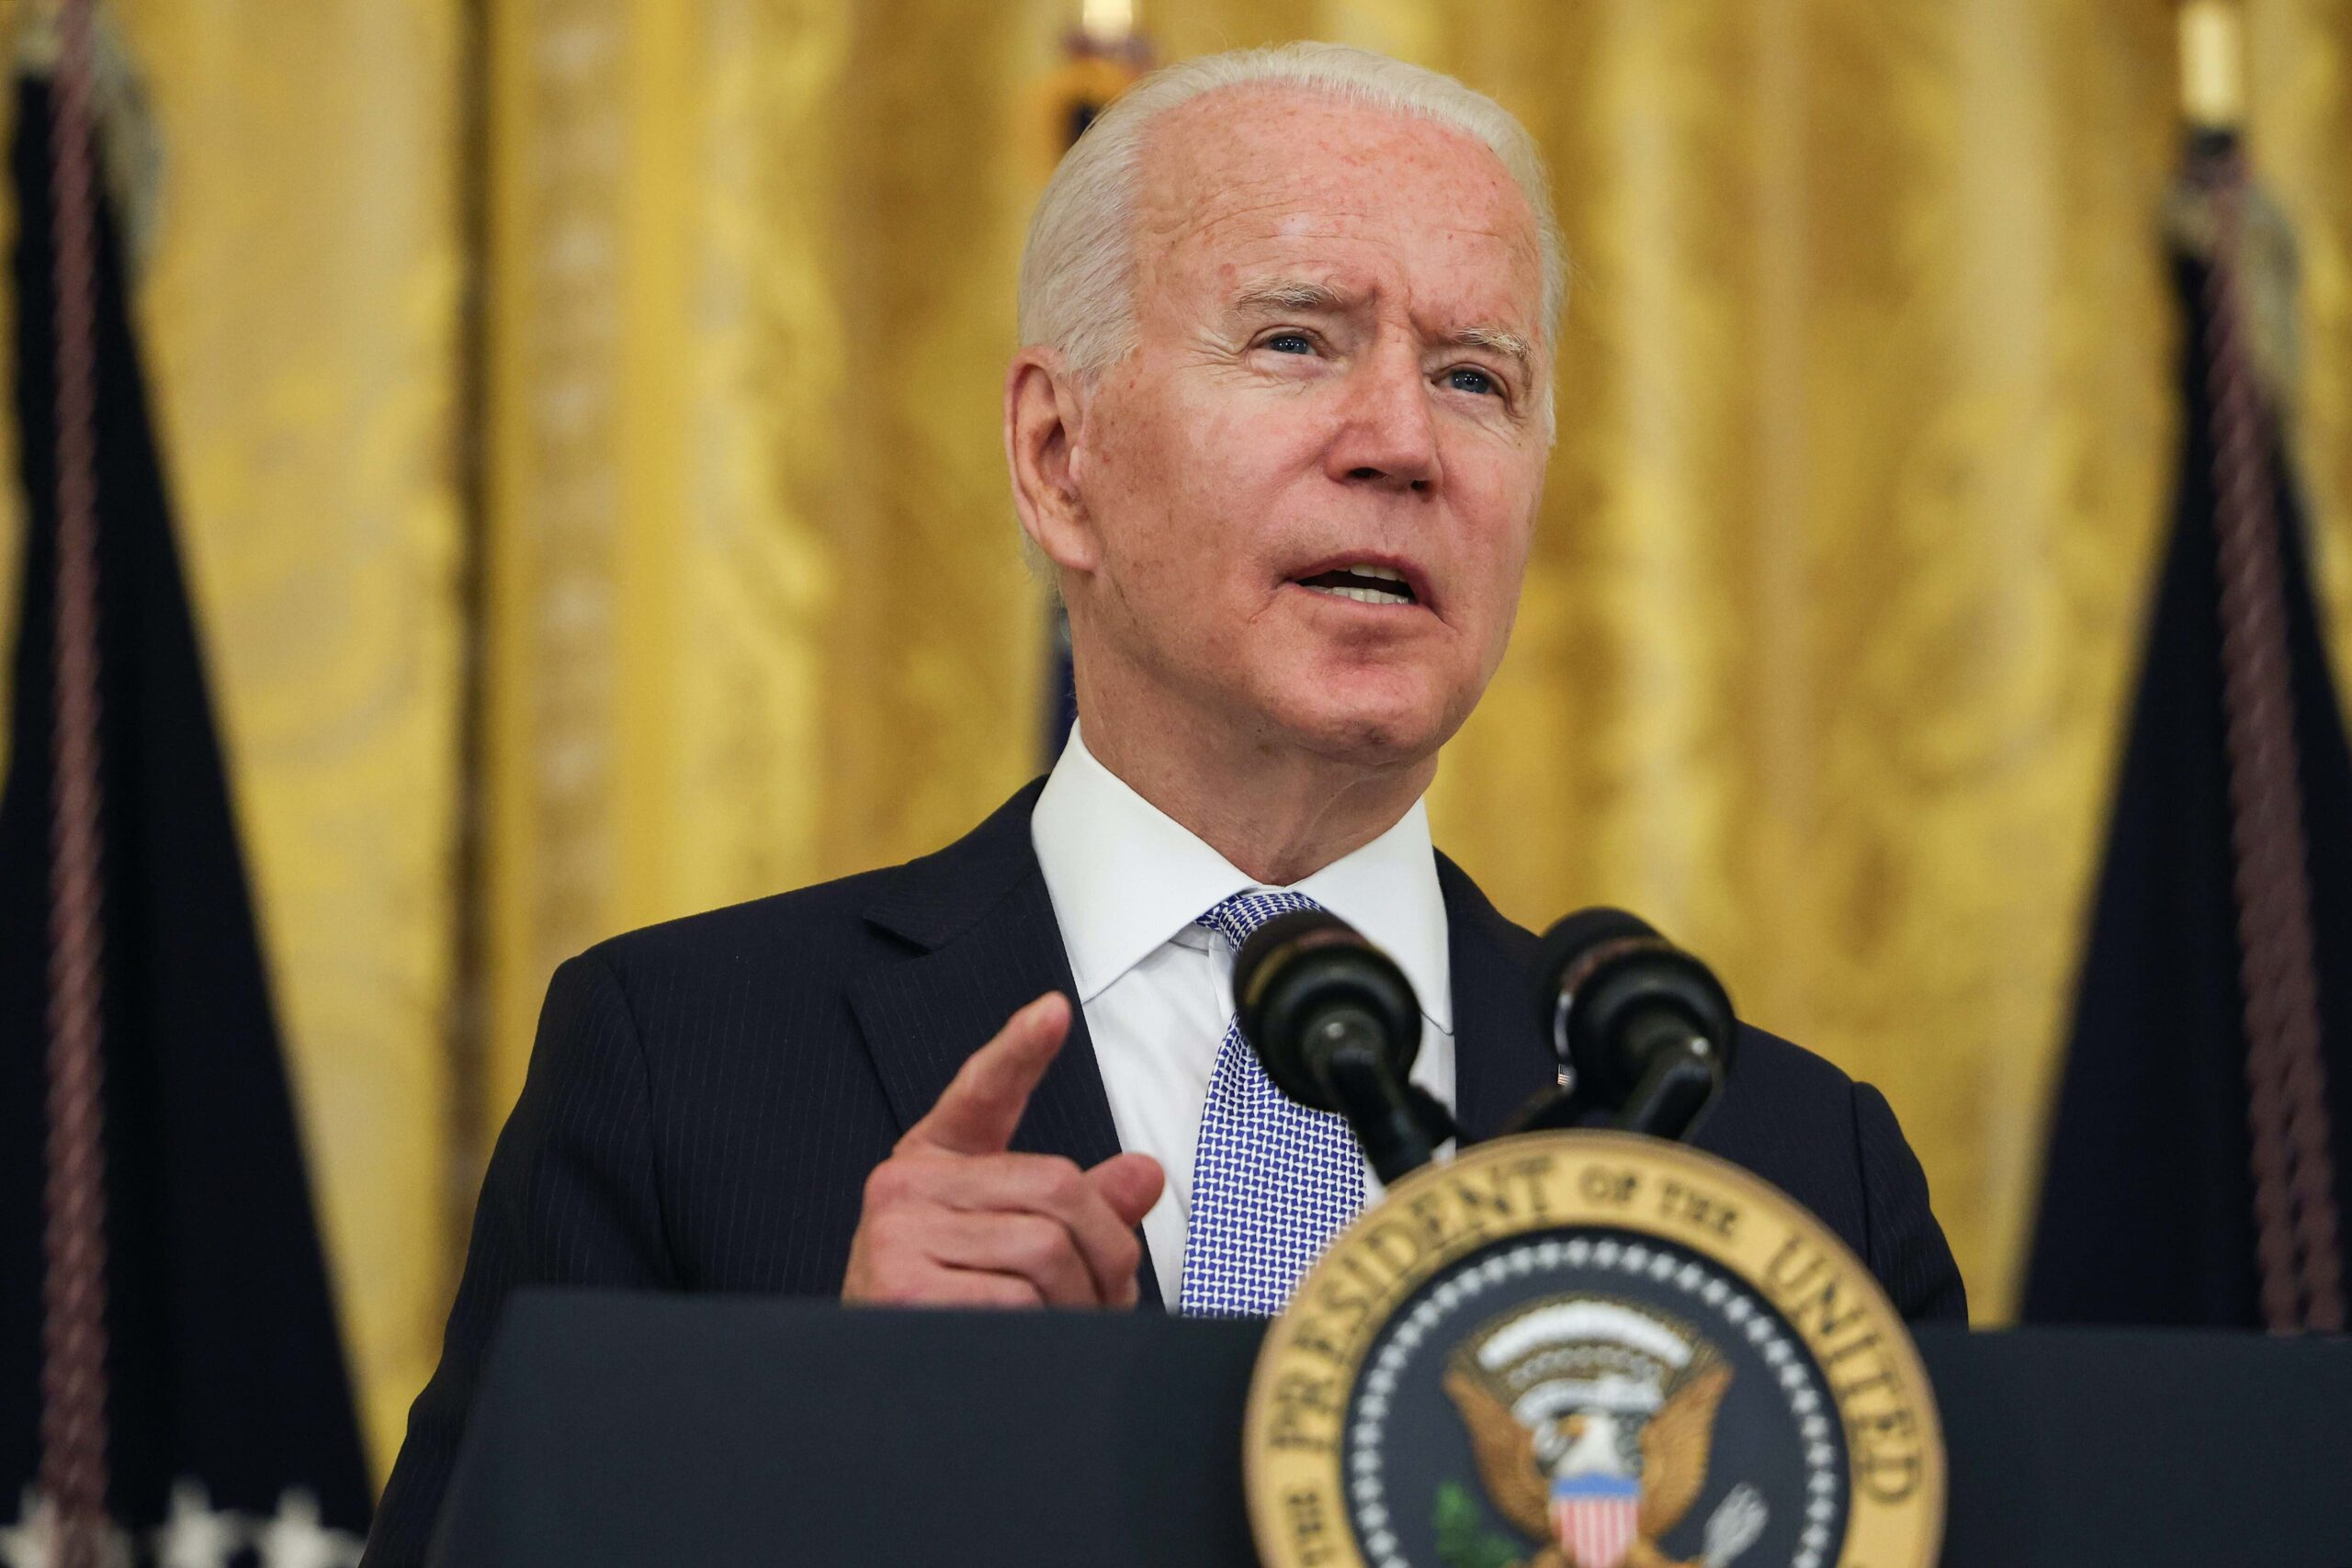 <i>Anna Moneymaker/Getty Images North America/Getty Images</i><br/>President Joe Biden will discuss applying new sanctions on the Cuban regime when he meets with Cuban-American leaders at the White House on Friday. Biden is shown here in the East Room of the White House on July 29